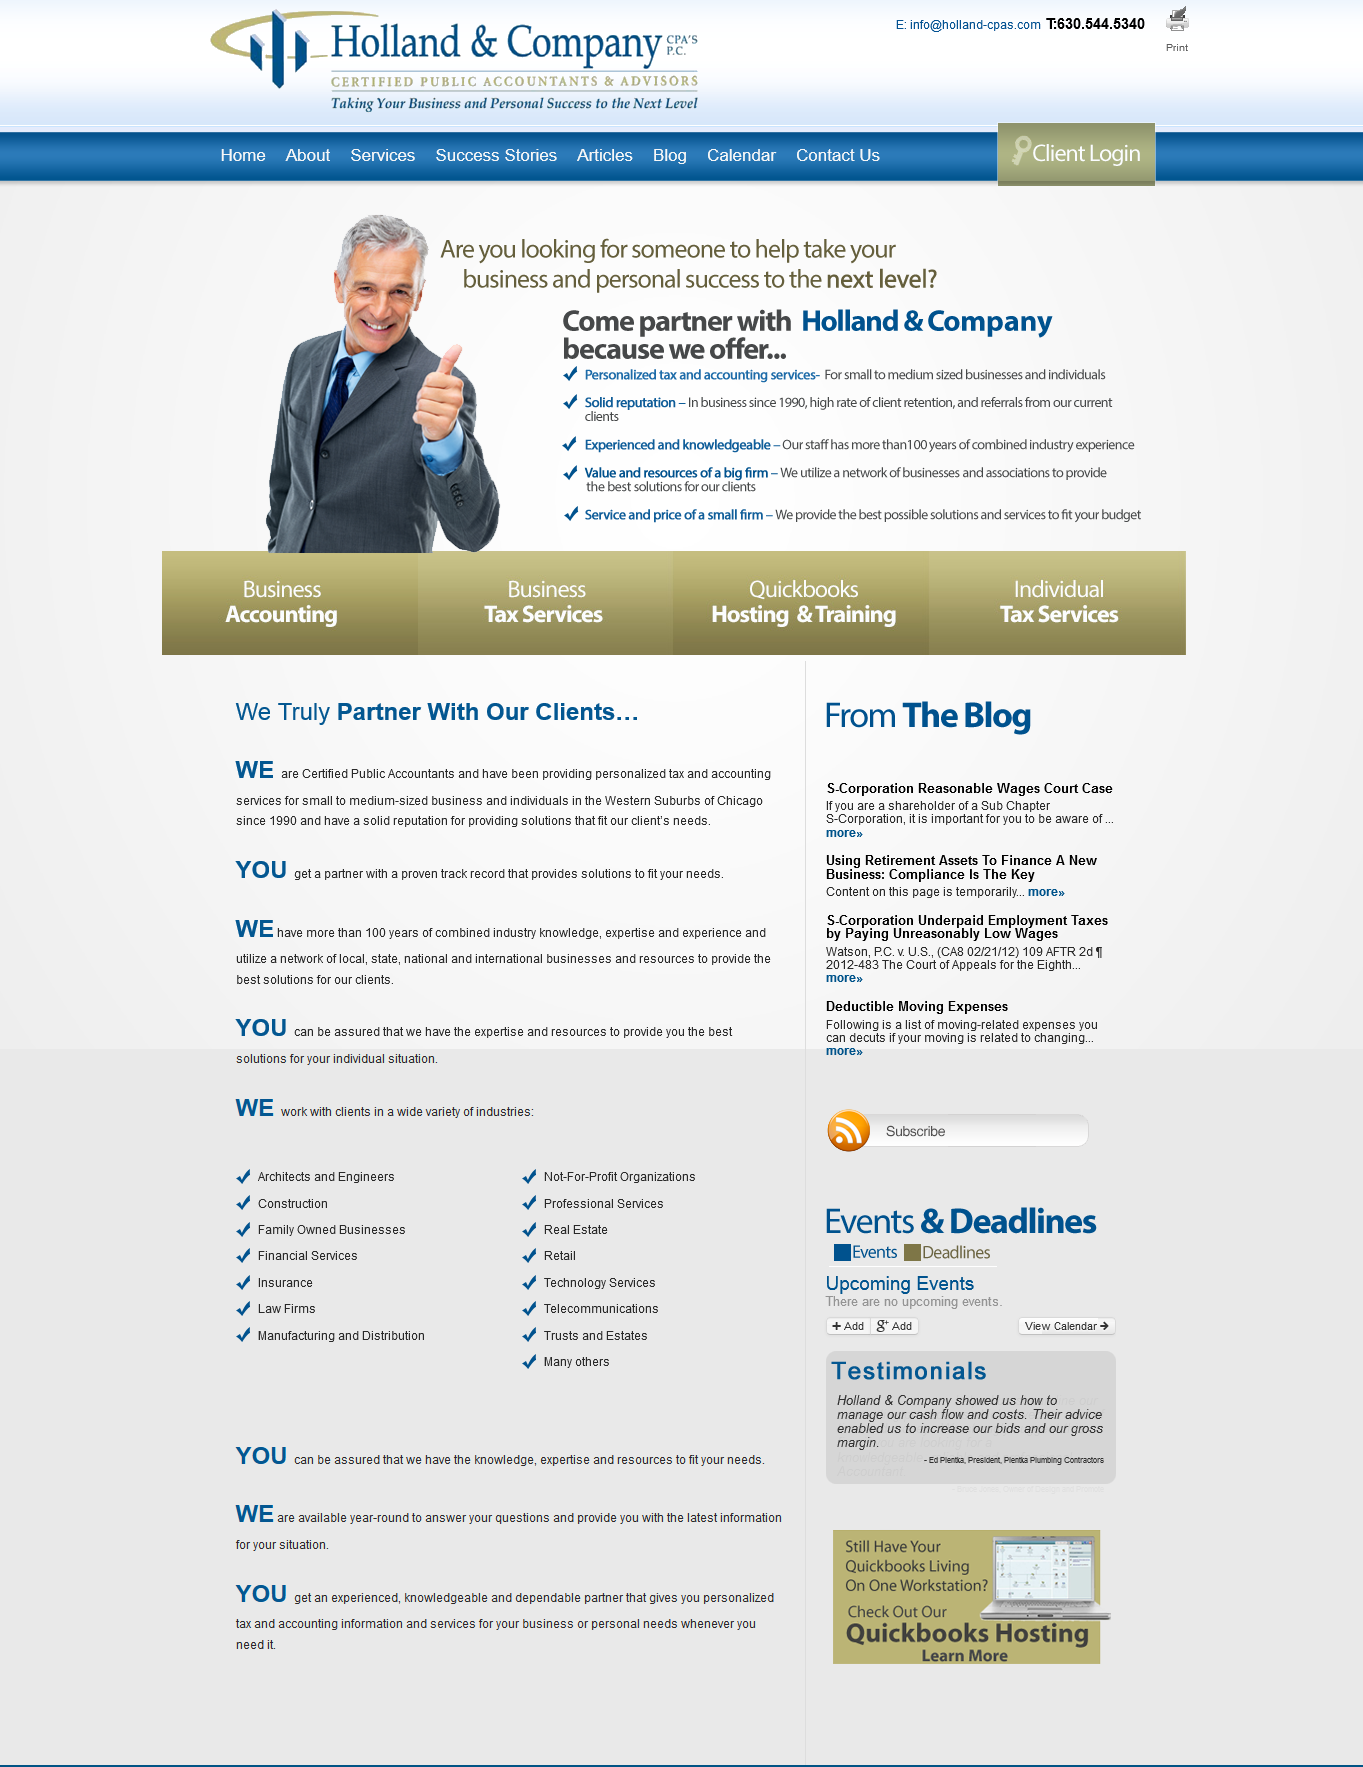 Brand New Just Went Live Website For An Accounting Firm In Naperville Accounting Firms Web Design Company Tax Services